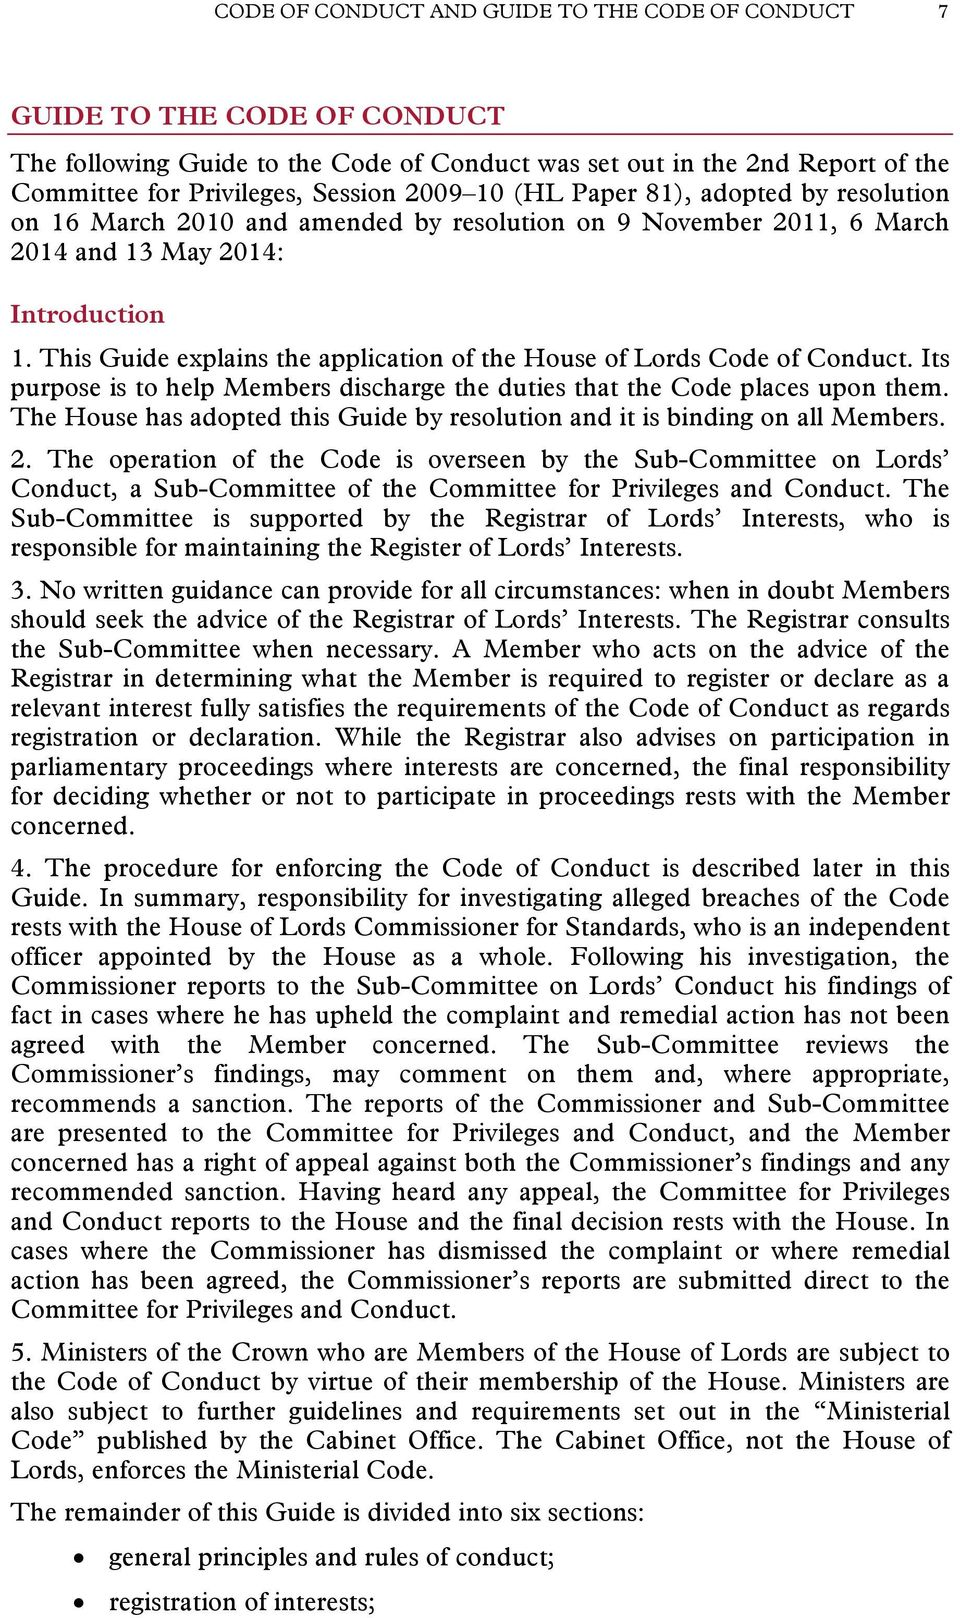 This Guide explains the application of the House of Lords Code of Conduct. Its purpose is to help Members discharge the duties that the Code places upon them.